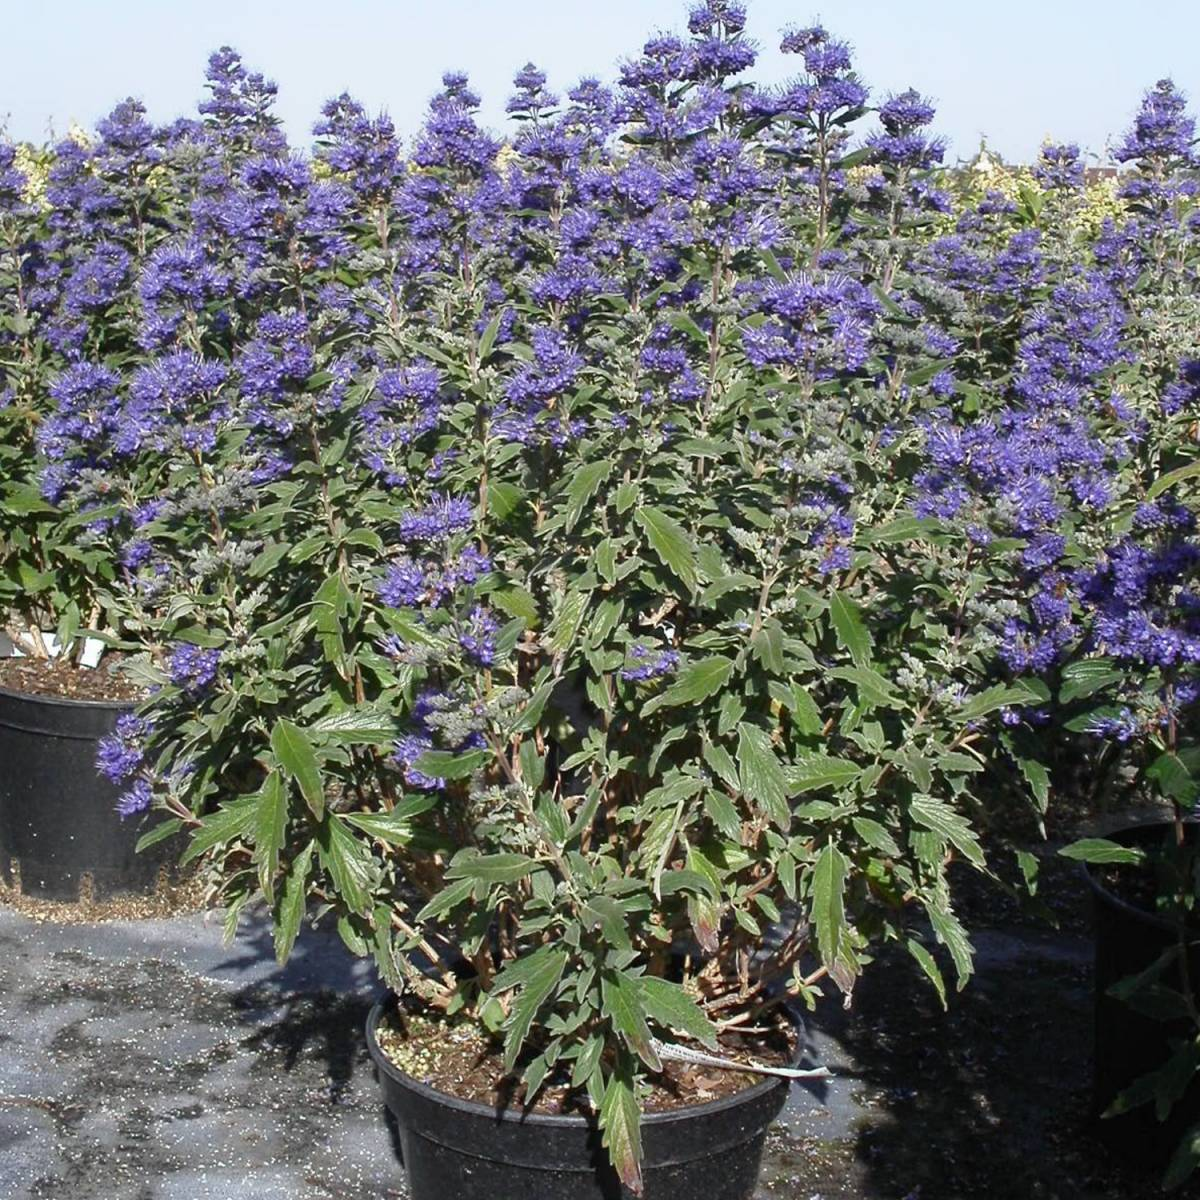 caryopteris-x-clandonensis-grand-bleu-in